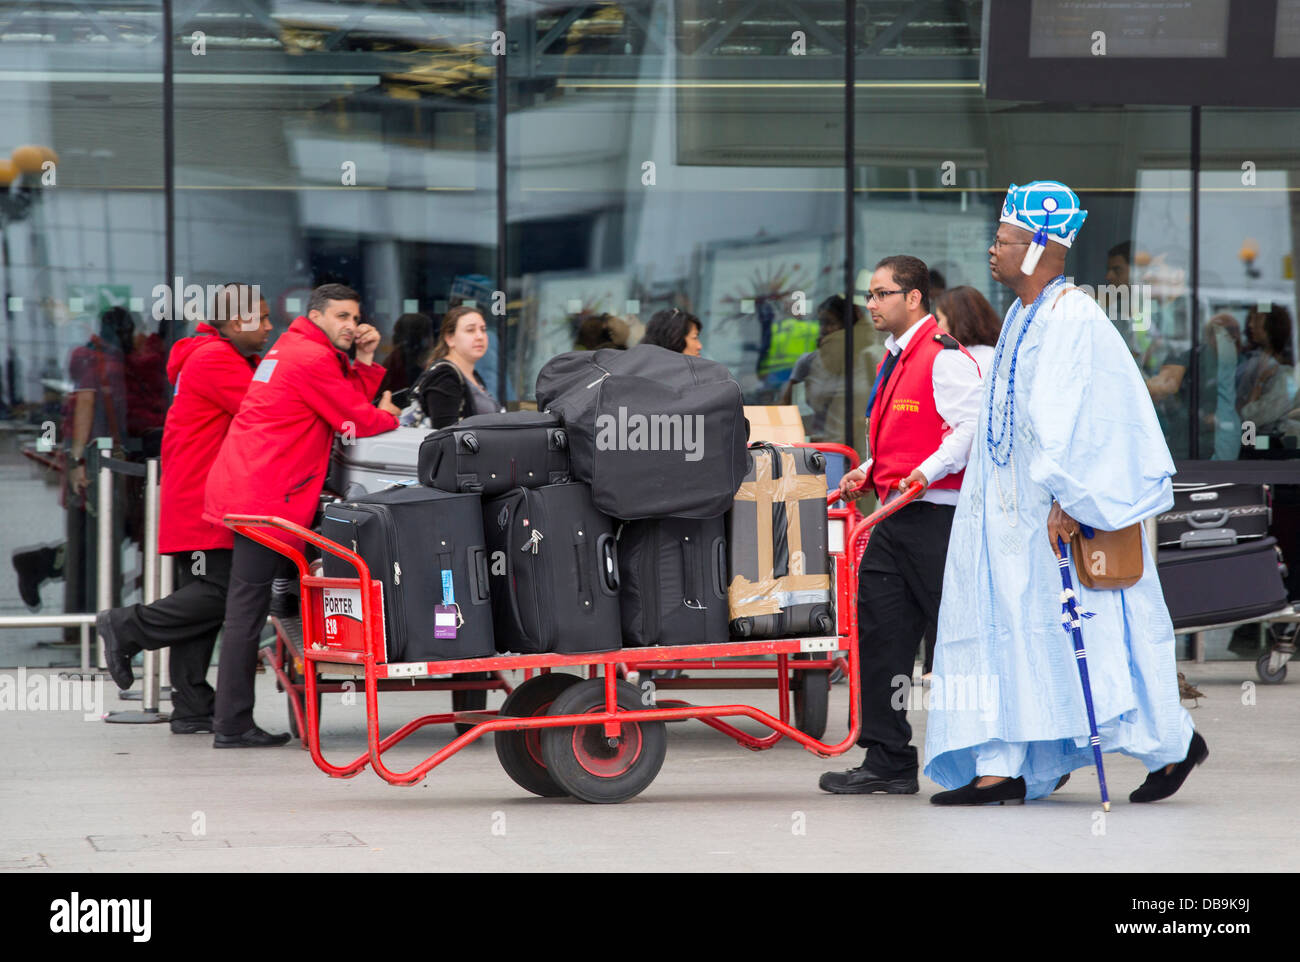 Porters at terminal two, Heathrow Airport, London, UK. - Stock Image